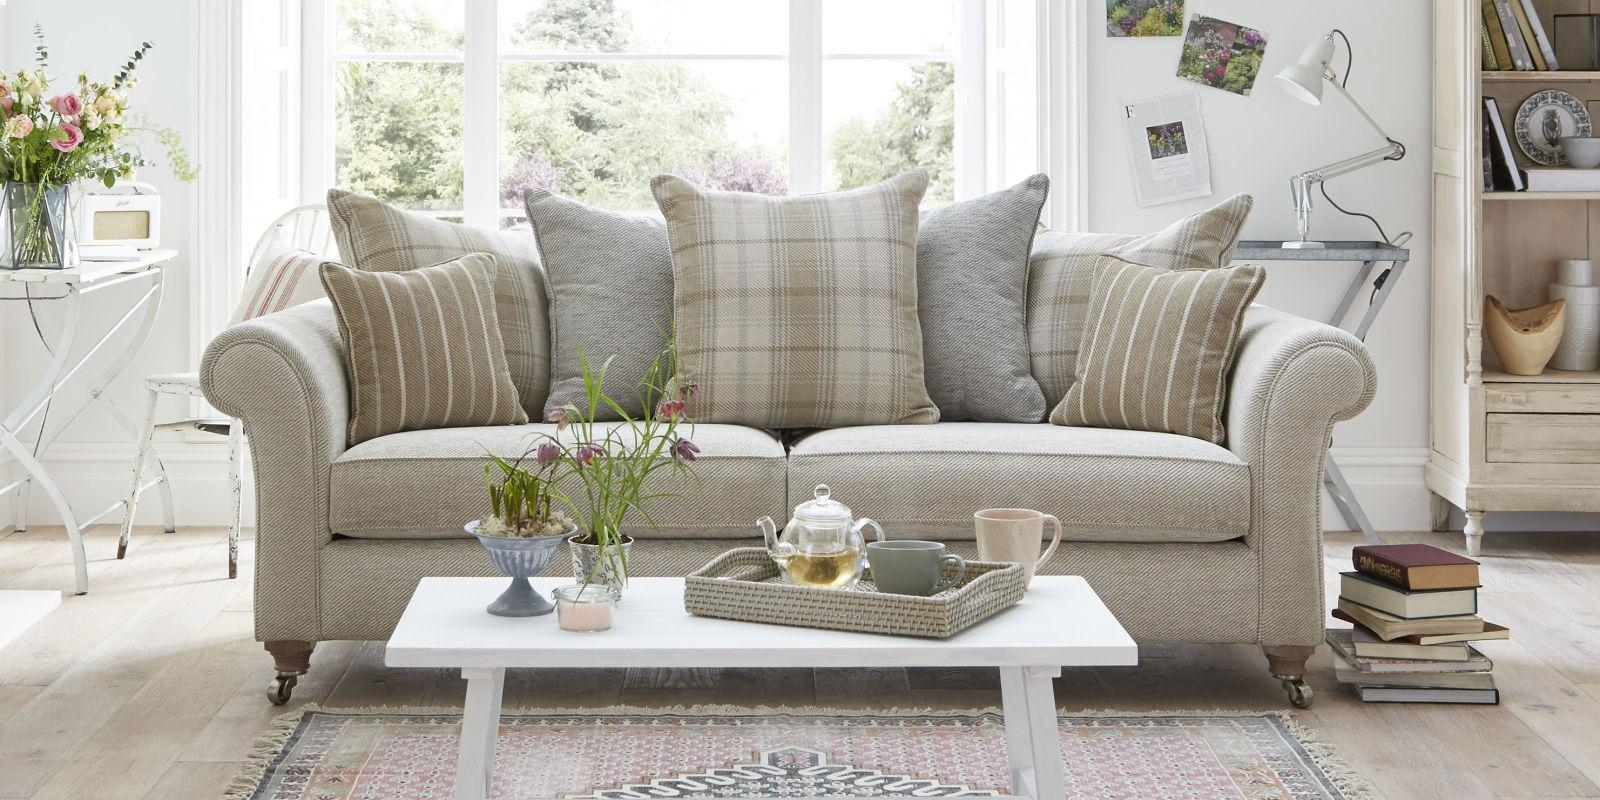 Country Style Sofas Uk | Tehranmix Decoration Pertaining To Country Style Sofas (Image 10 of 20)